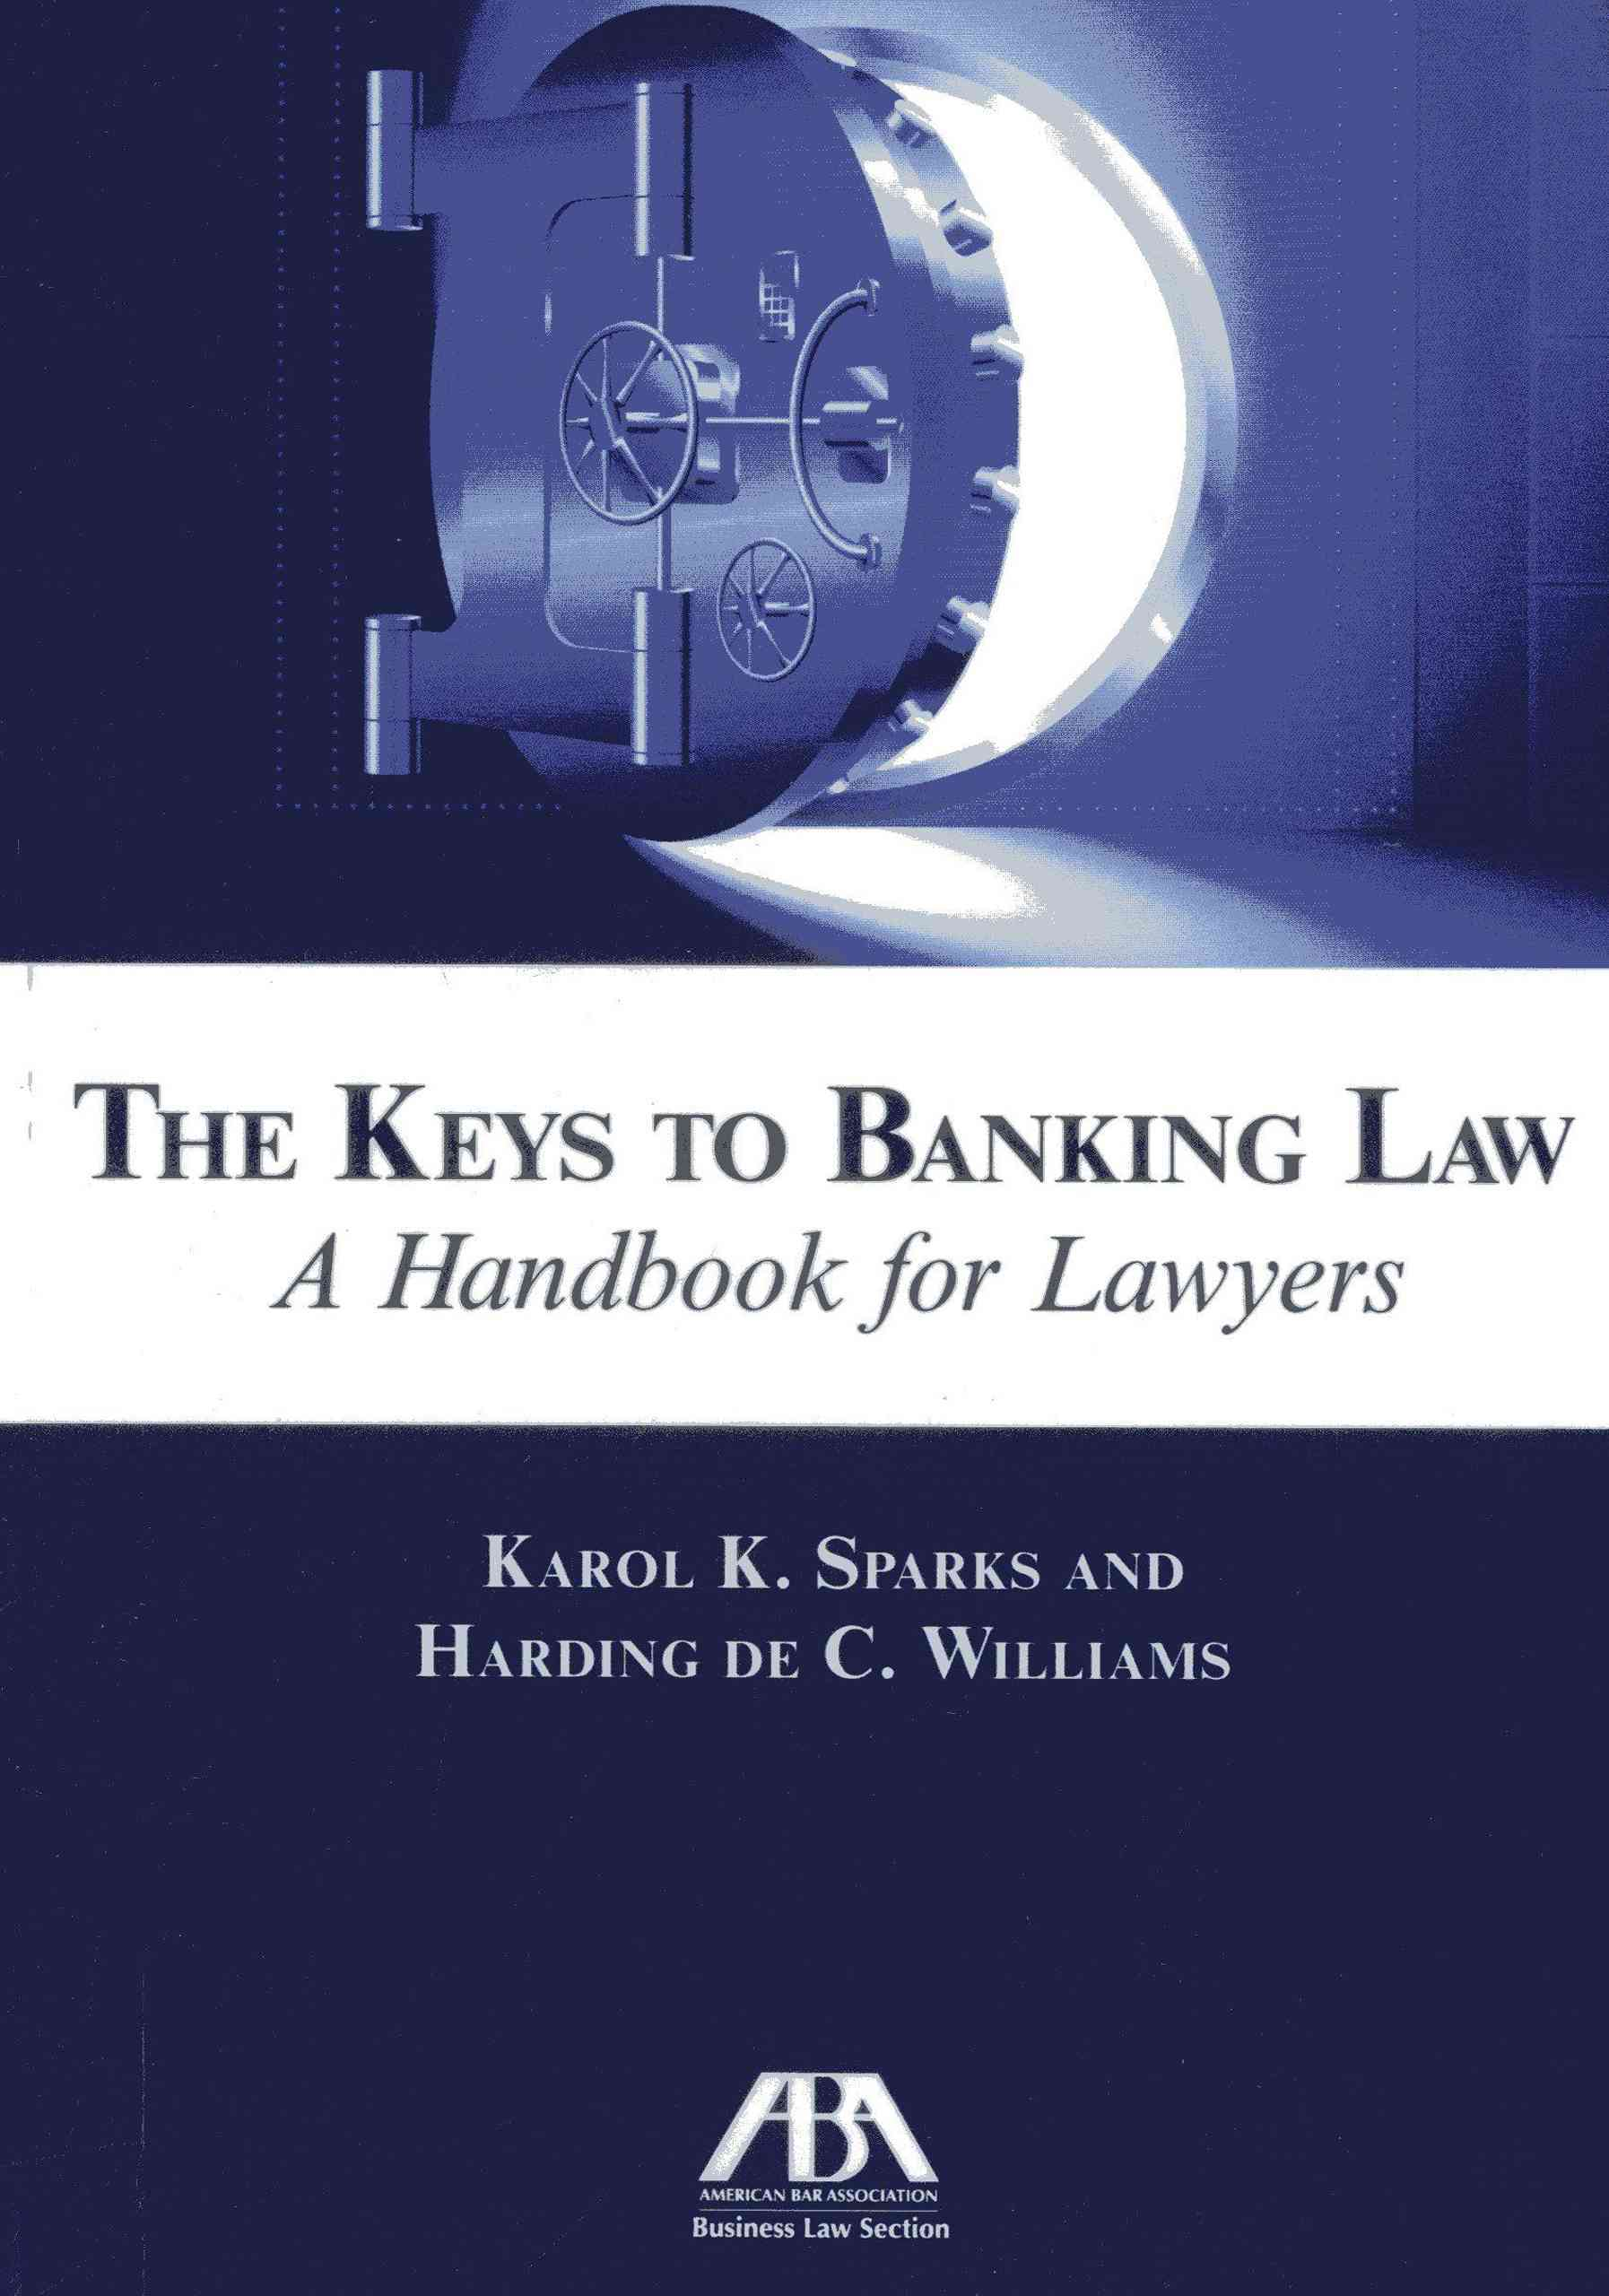 The Keys to Banking Law: A Handbook for Lawyers (Paperback)